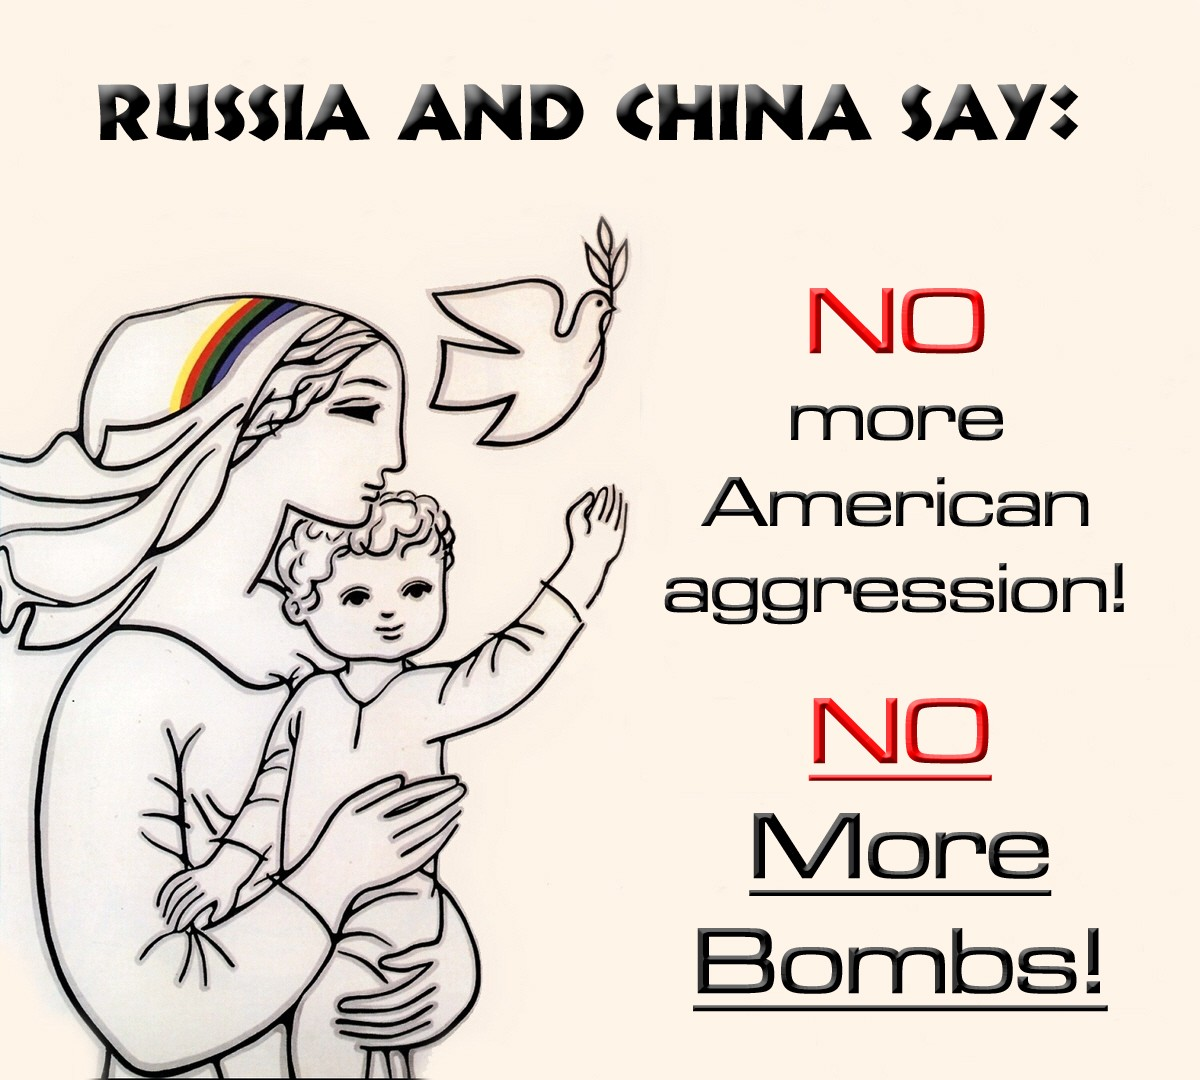 Barbara-Marie Drezhlo. Russia and China Say... NO WAR IN SYRIA! 2012